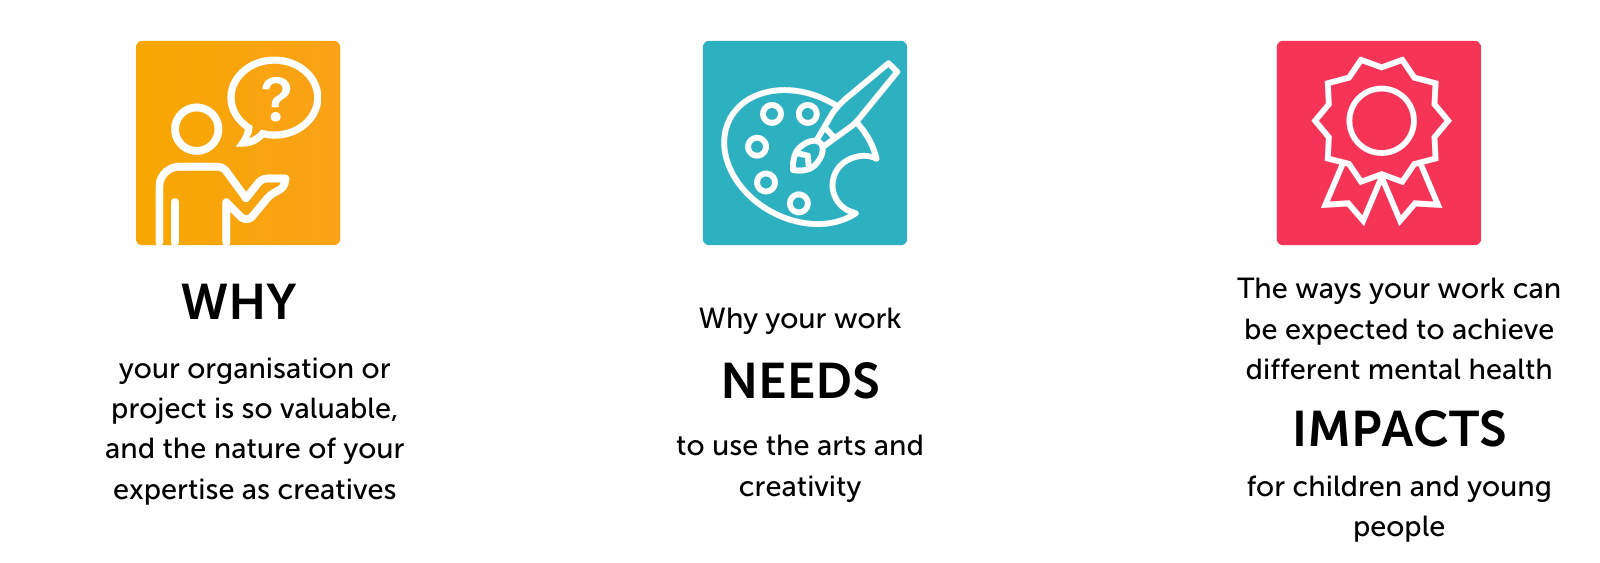 Why your organisation or project is so valuable, why your work needs to use the arts and creativity, and the ways your work can be expected to achieve different mental health impacts for children and young people.